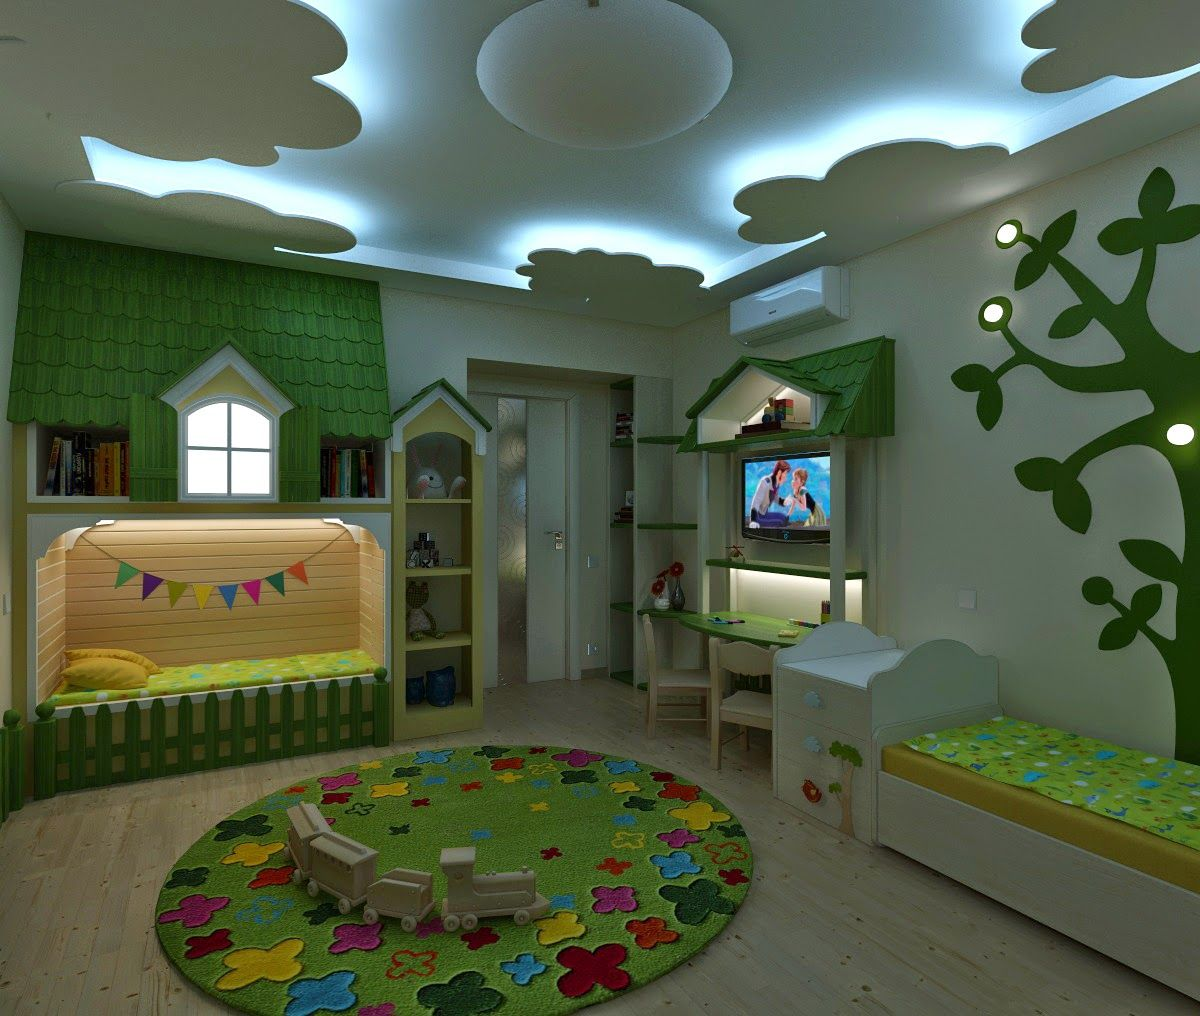 Colorful Kids Room Design: Дизайн интерьера и 3D визуализация